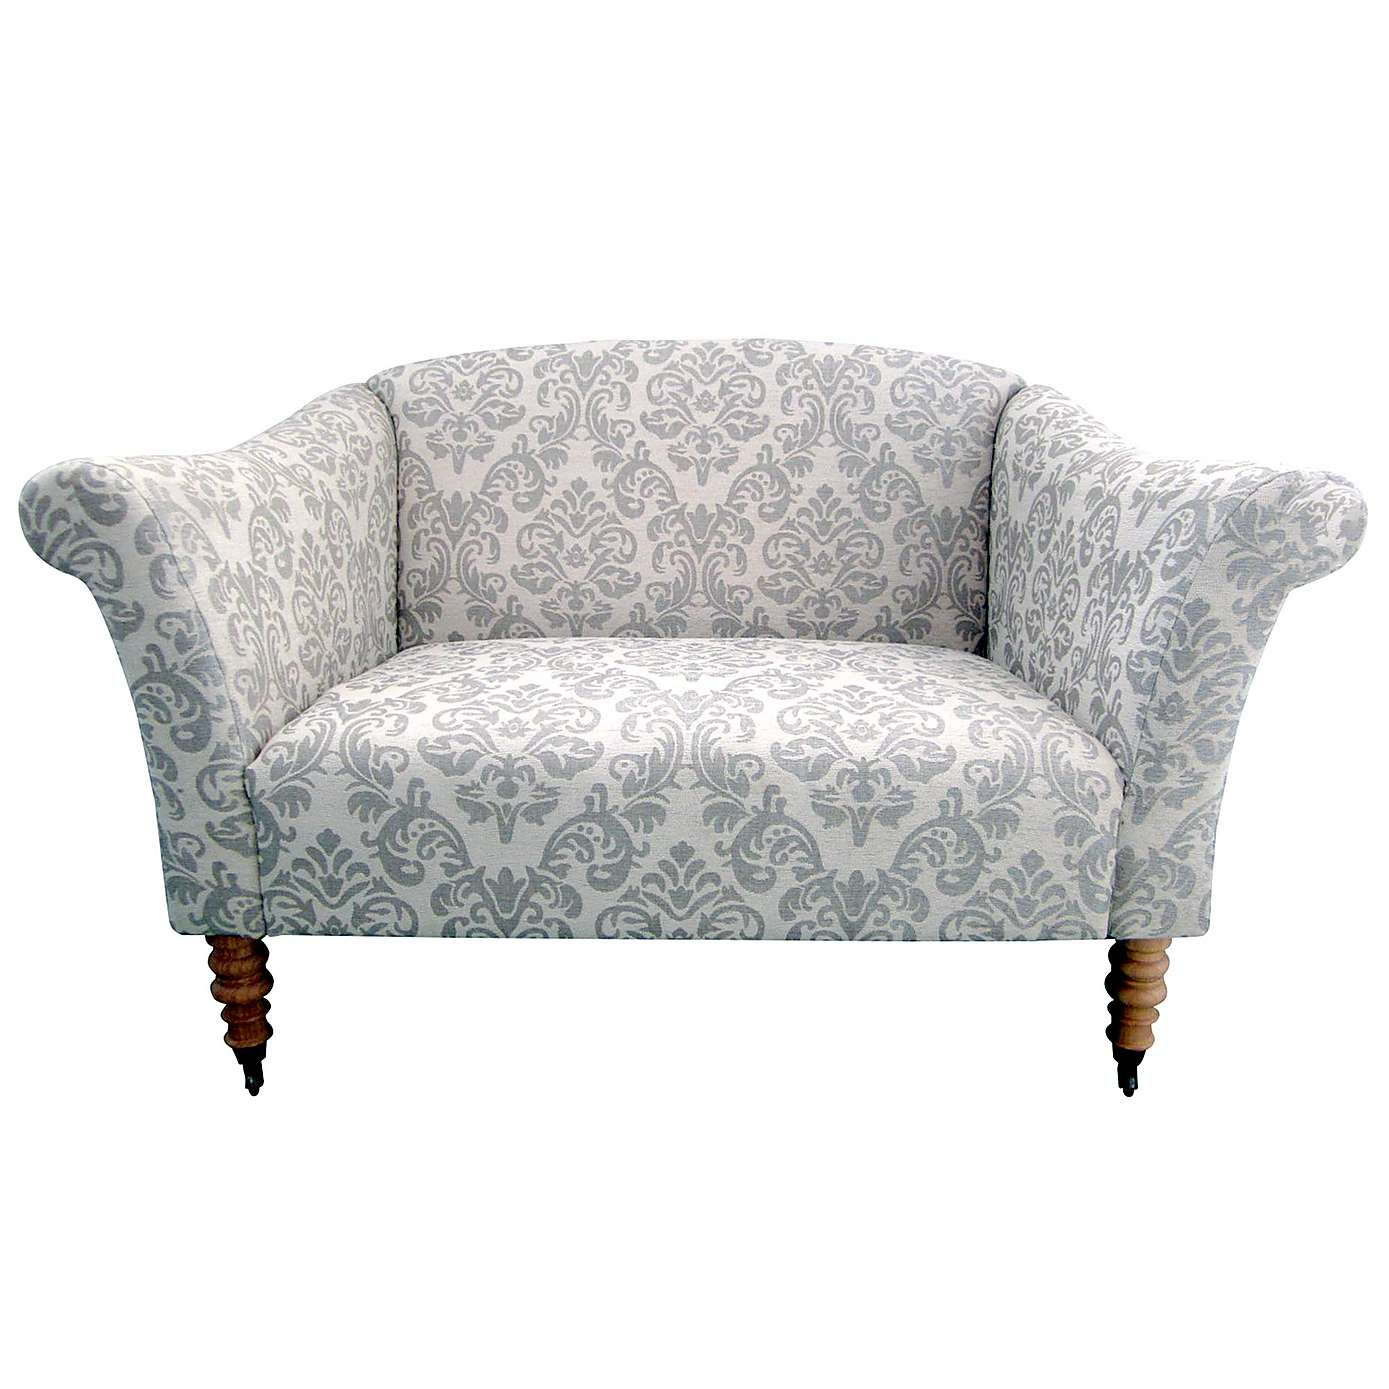 Kensington Snuggle Chair Dunelm